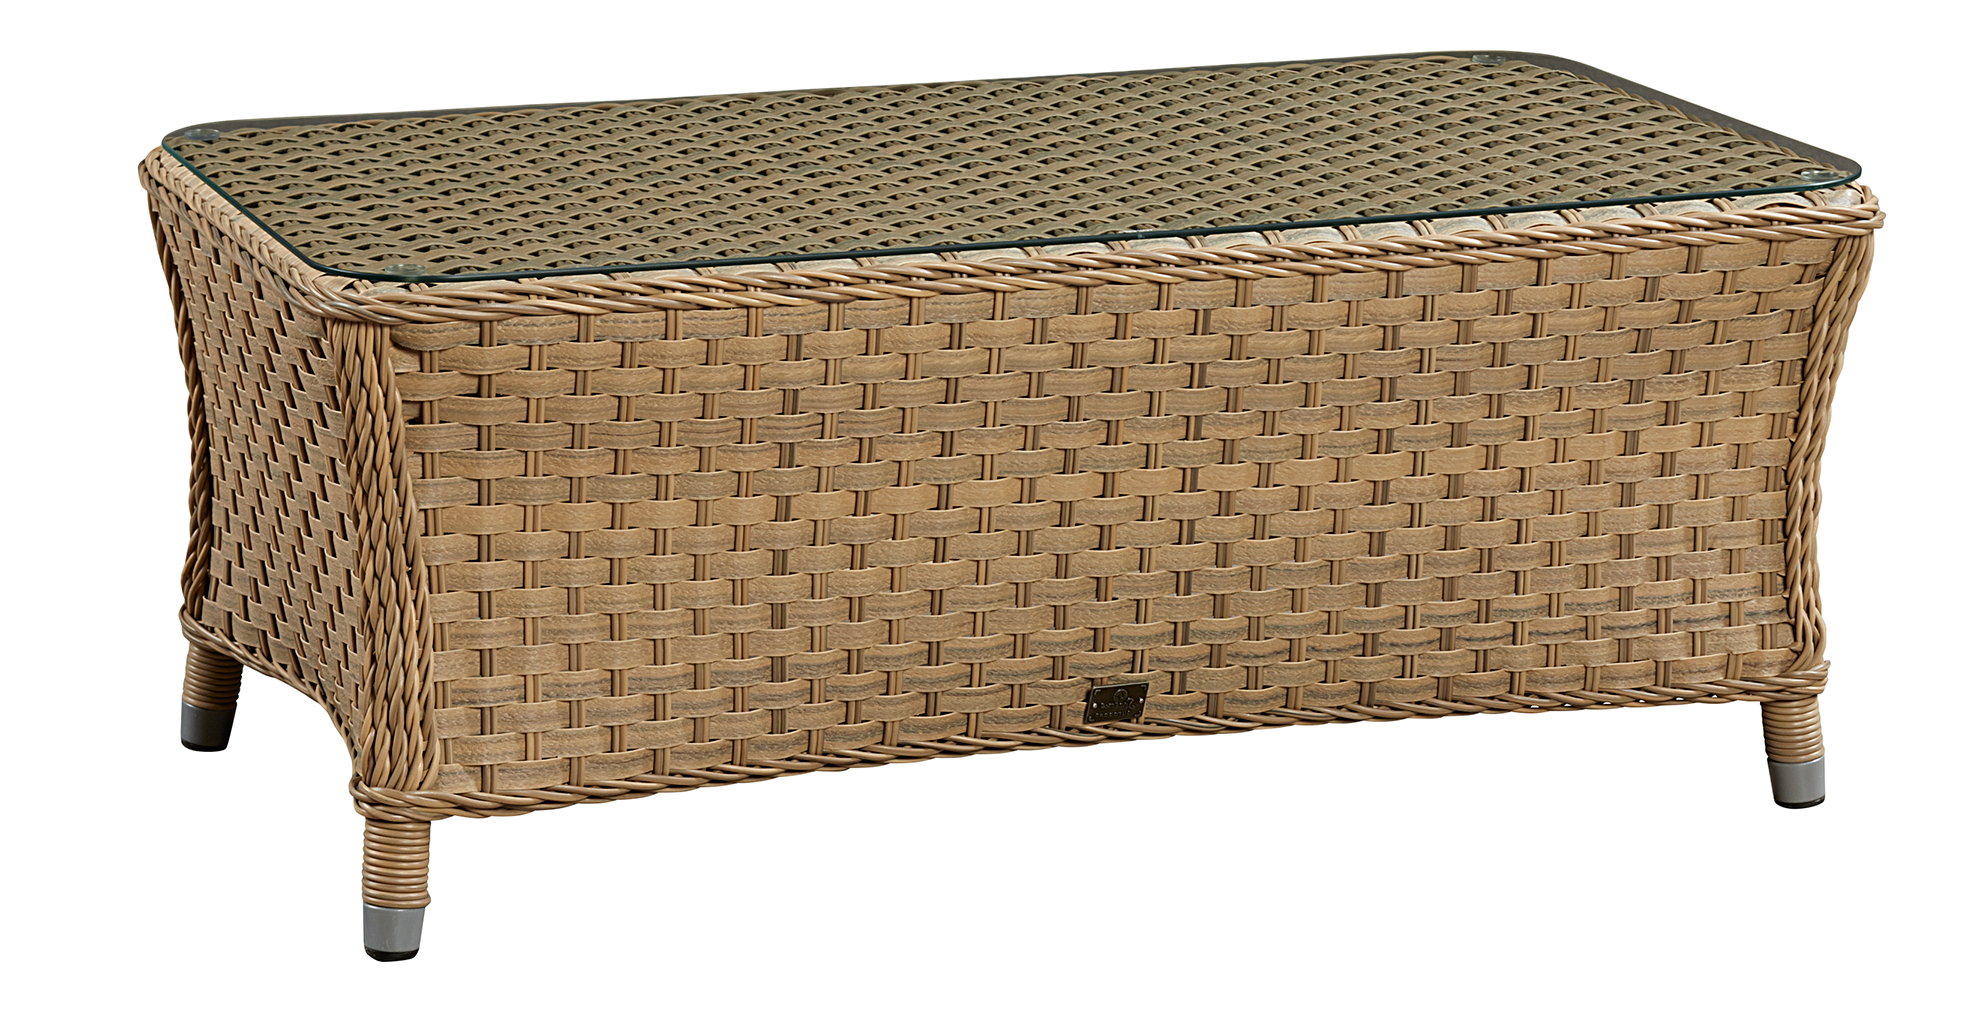 Outdoor Wicker Occasional Tables and Such RedBarn Furniture